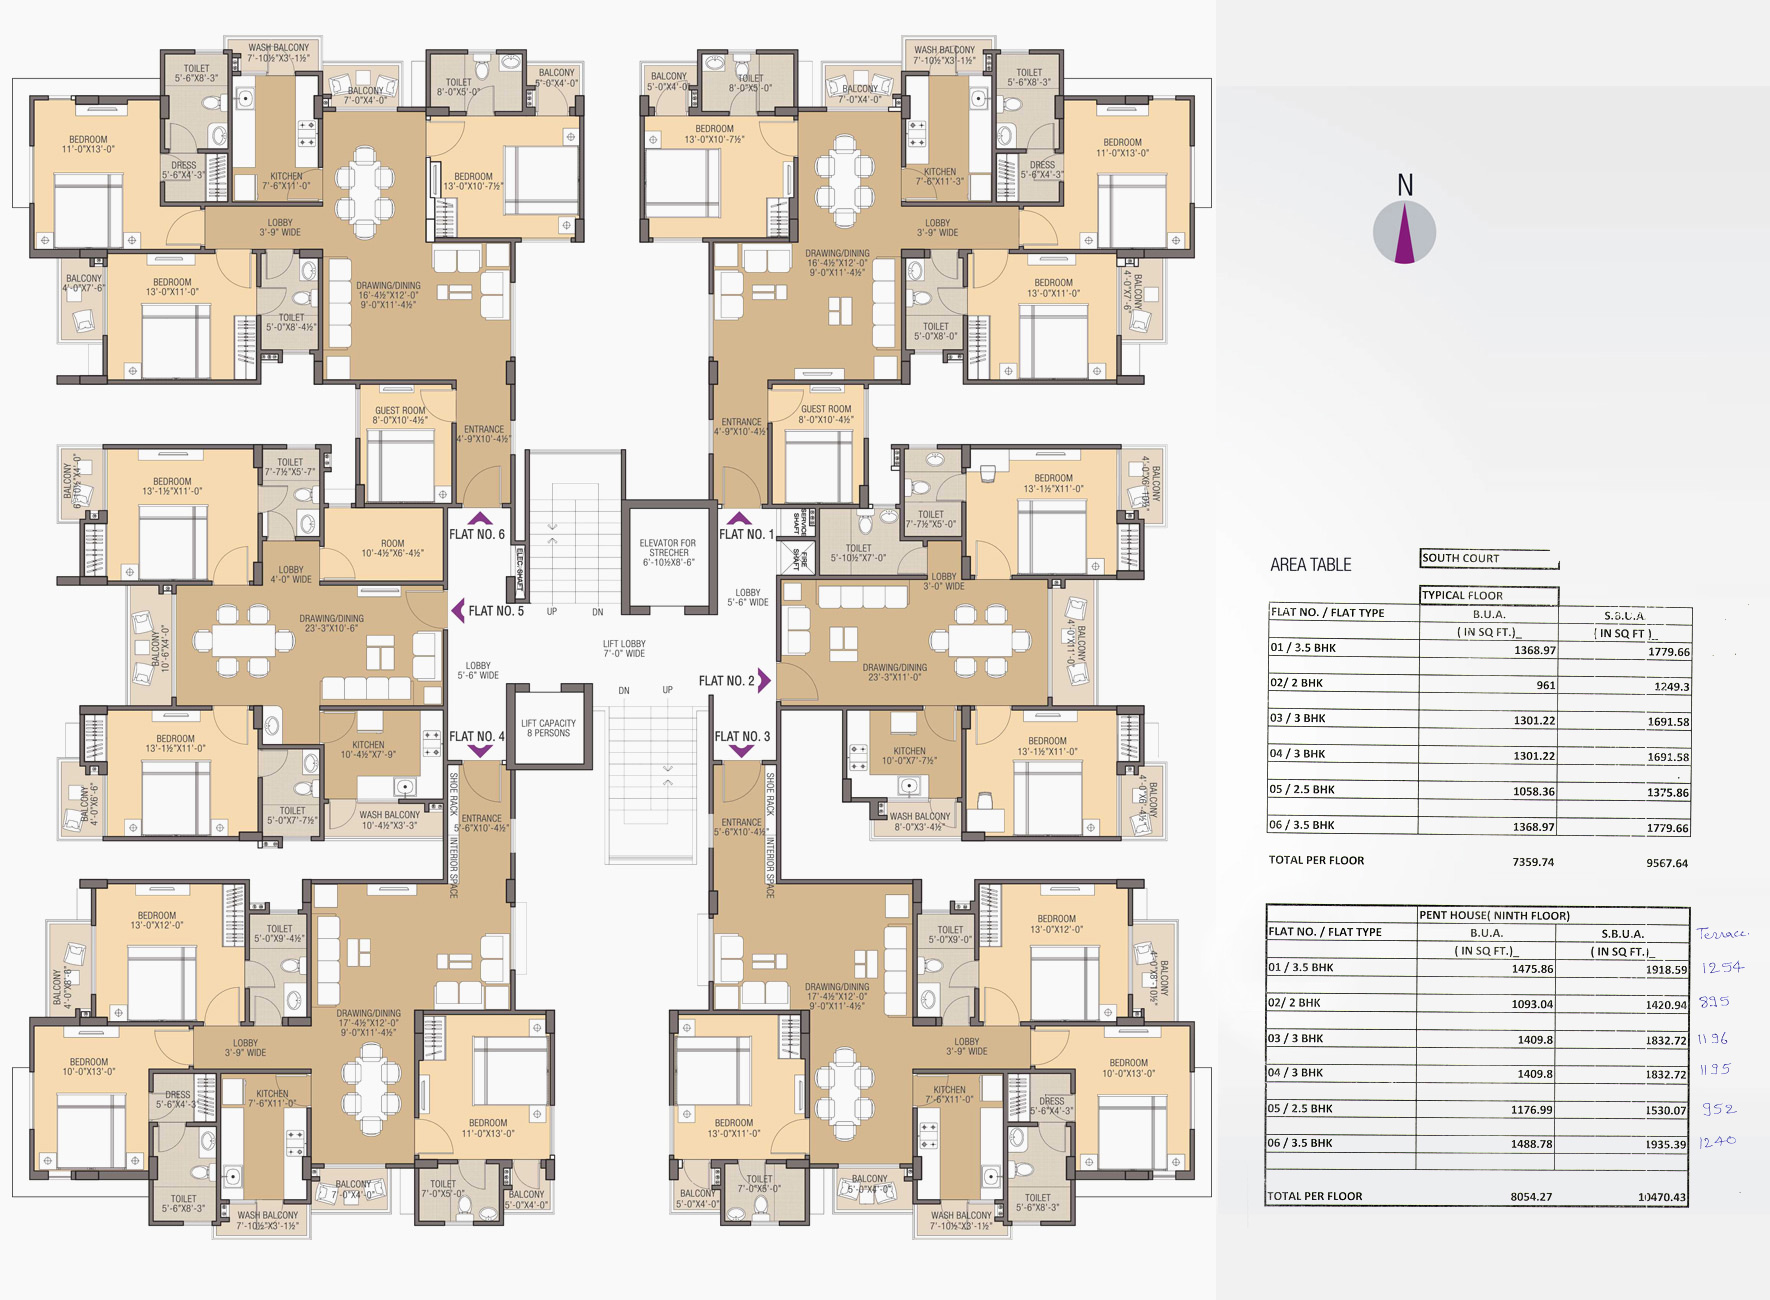 Court Typical Plan L on Wiring An Exhaust Fan